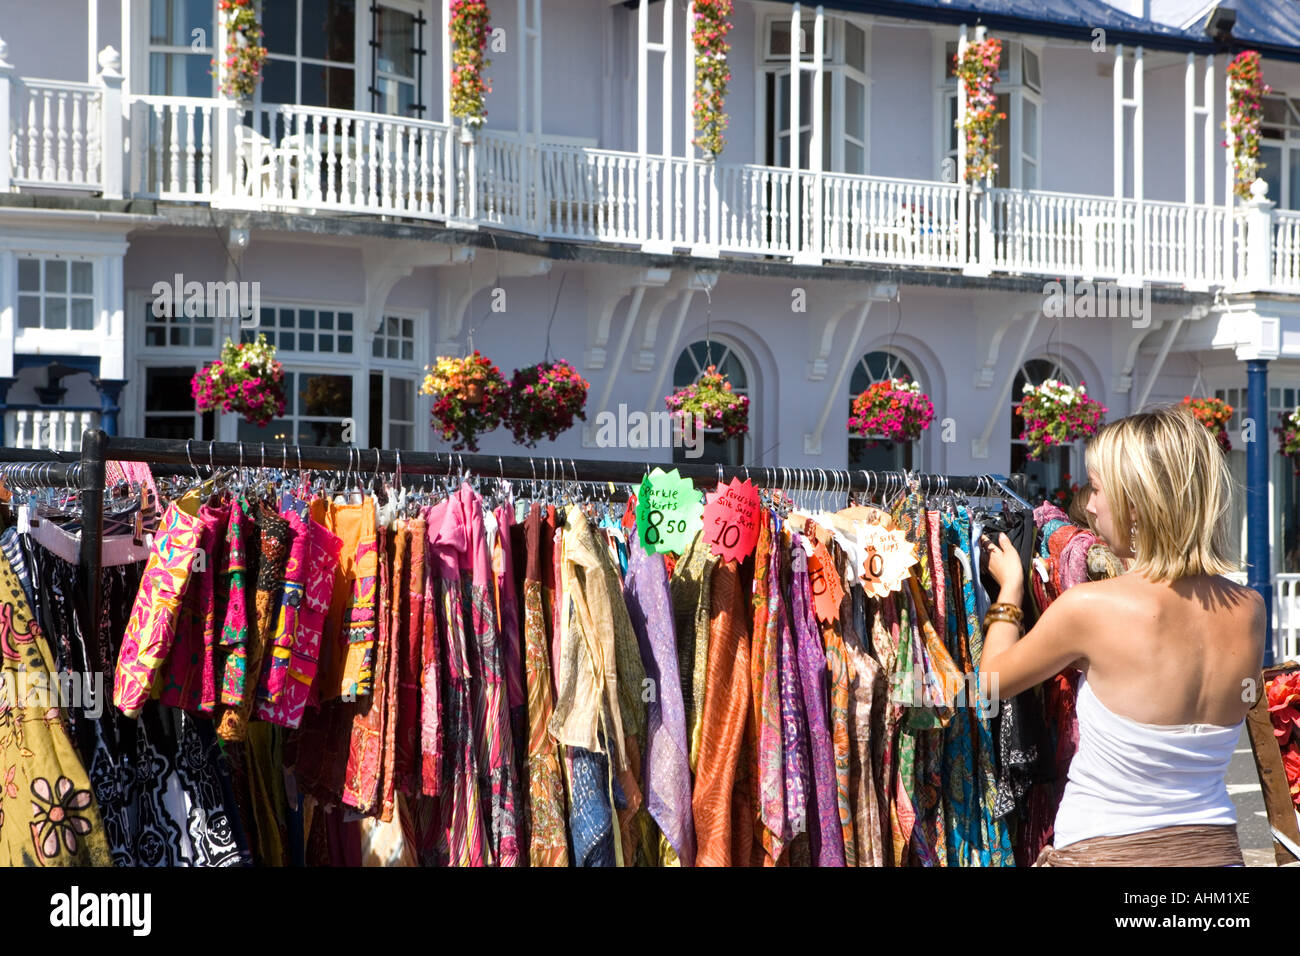 Woman looking at skirts at outdoor market Sidmouth Devon England - Stock Image